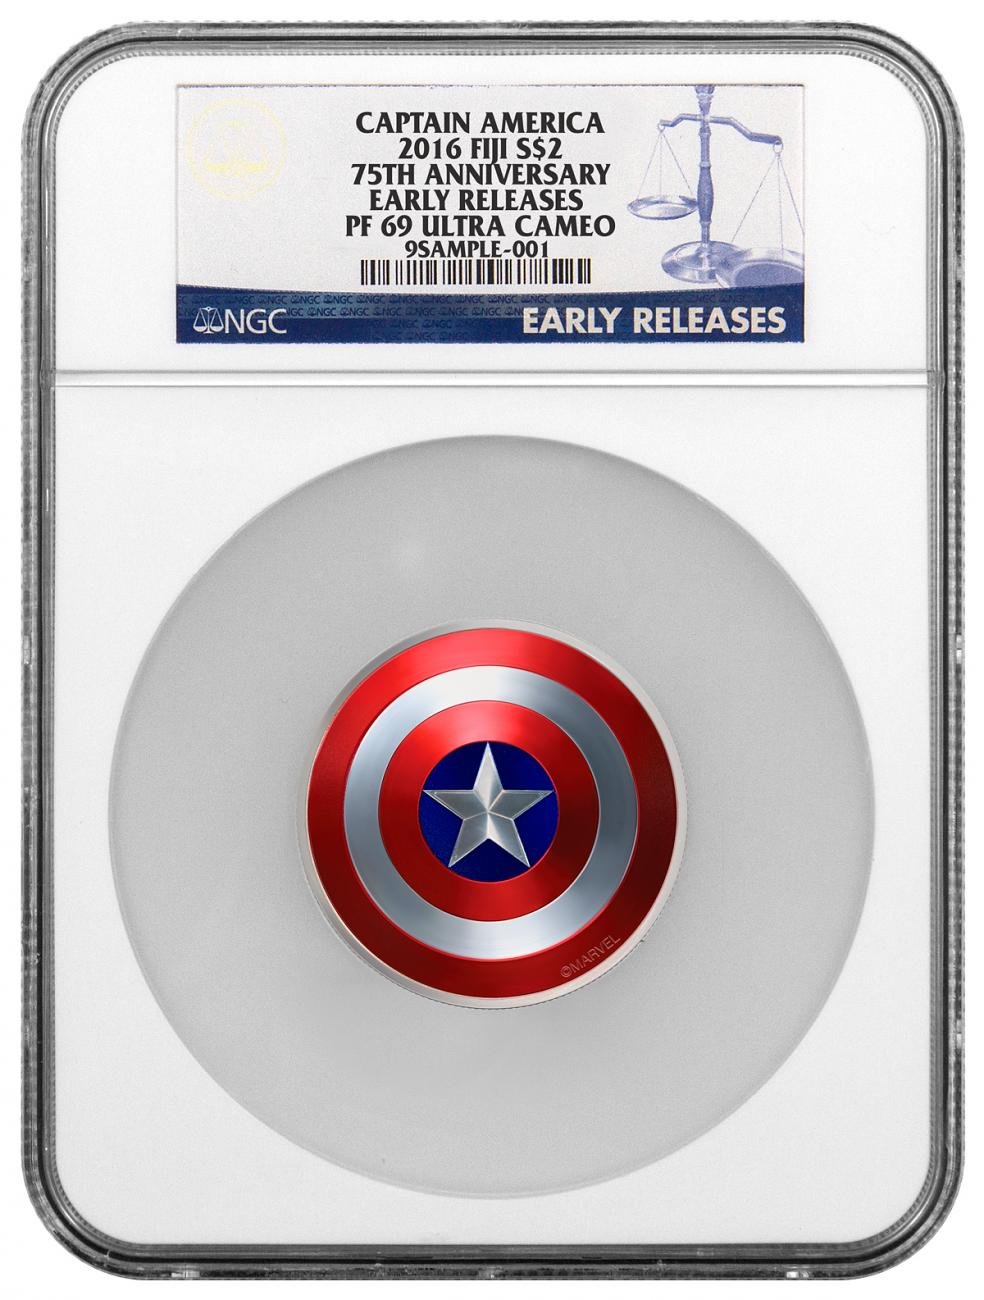 2016 Fiji Marvel Captain America Shield - 75th Anniversary Domed 2 oz Silver Colorized Proof $2 Coin NGC PF69 UC ER